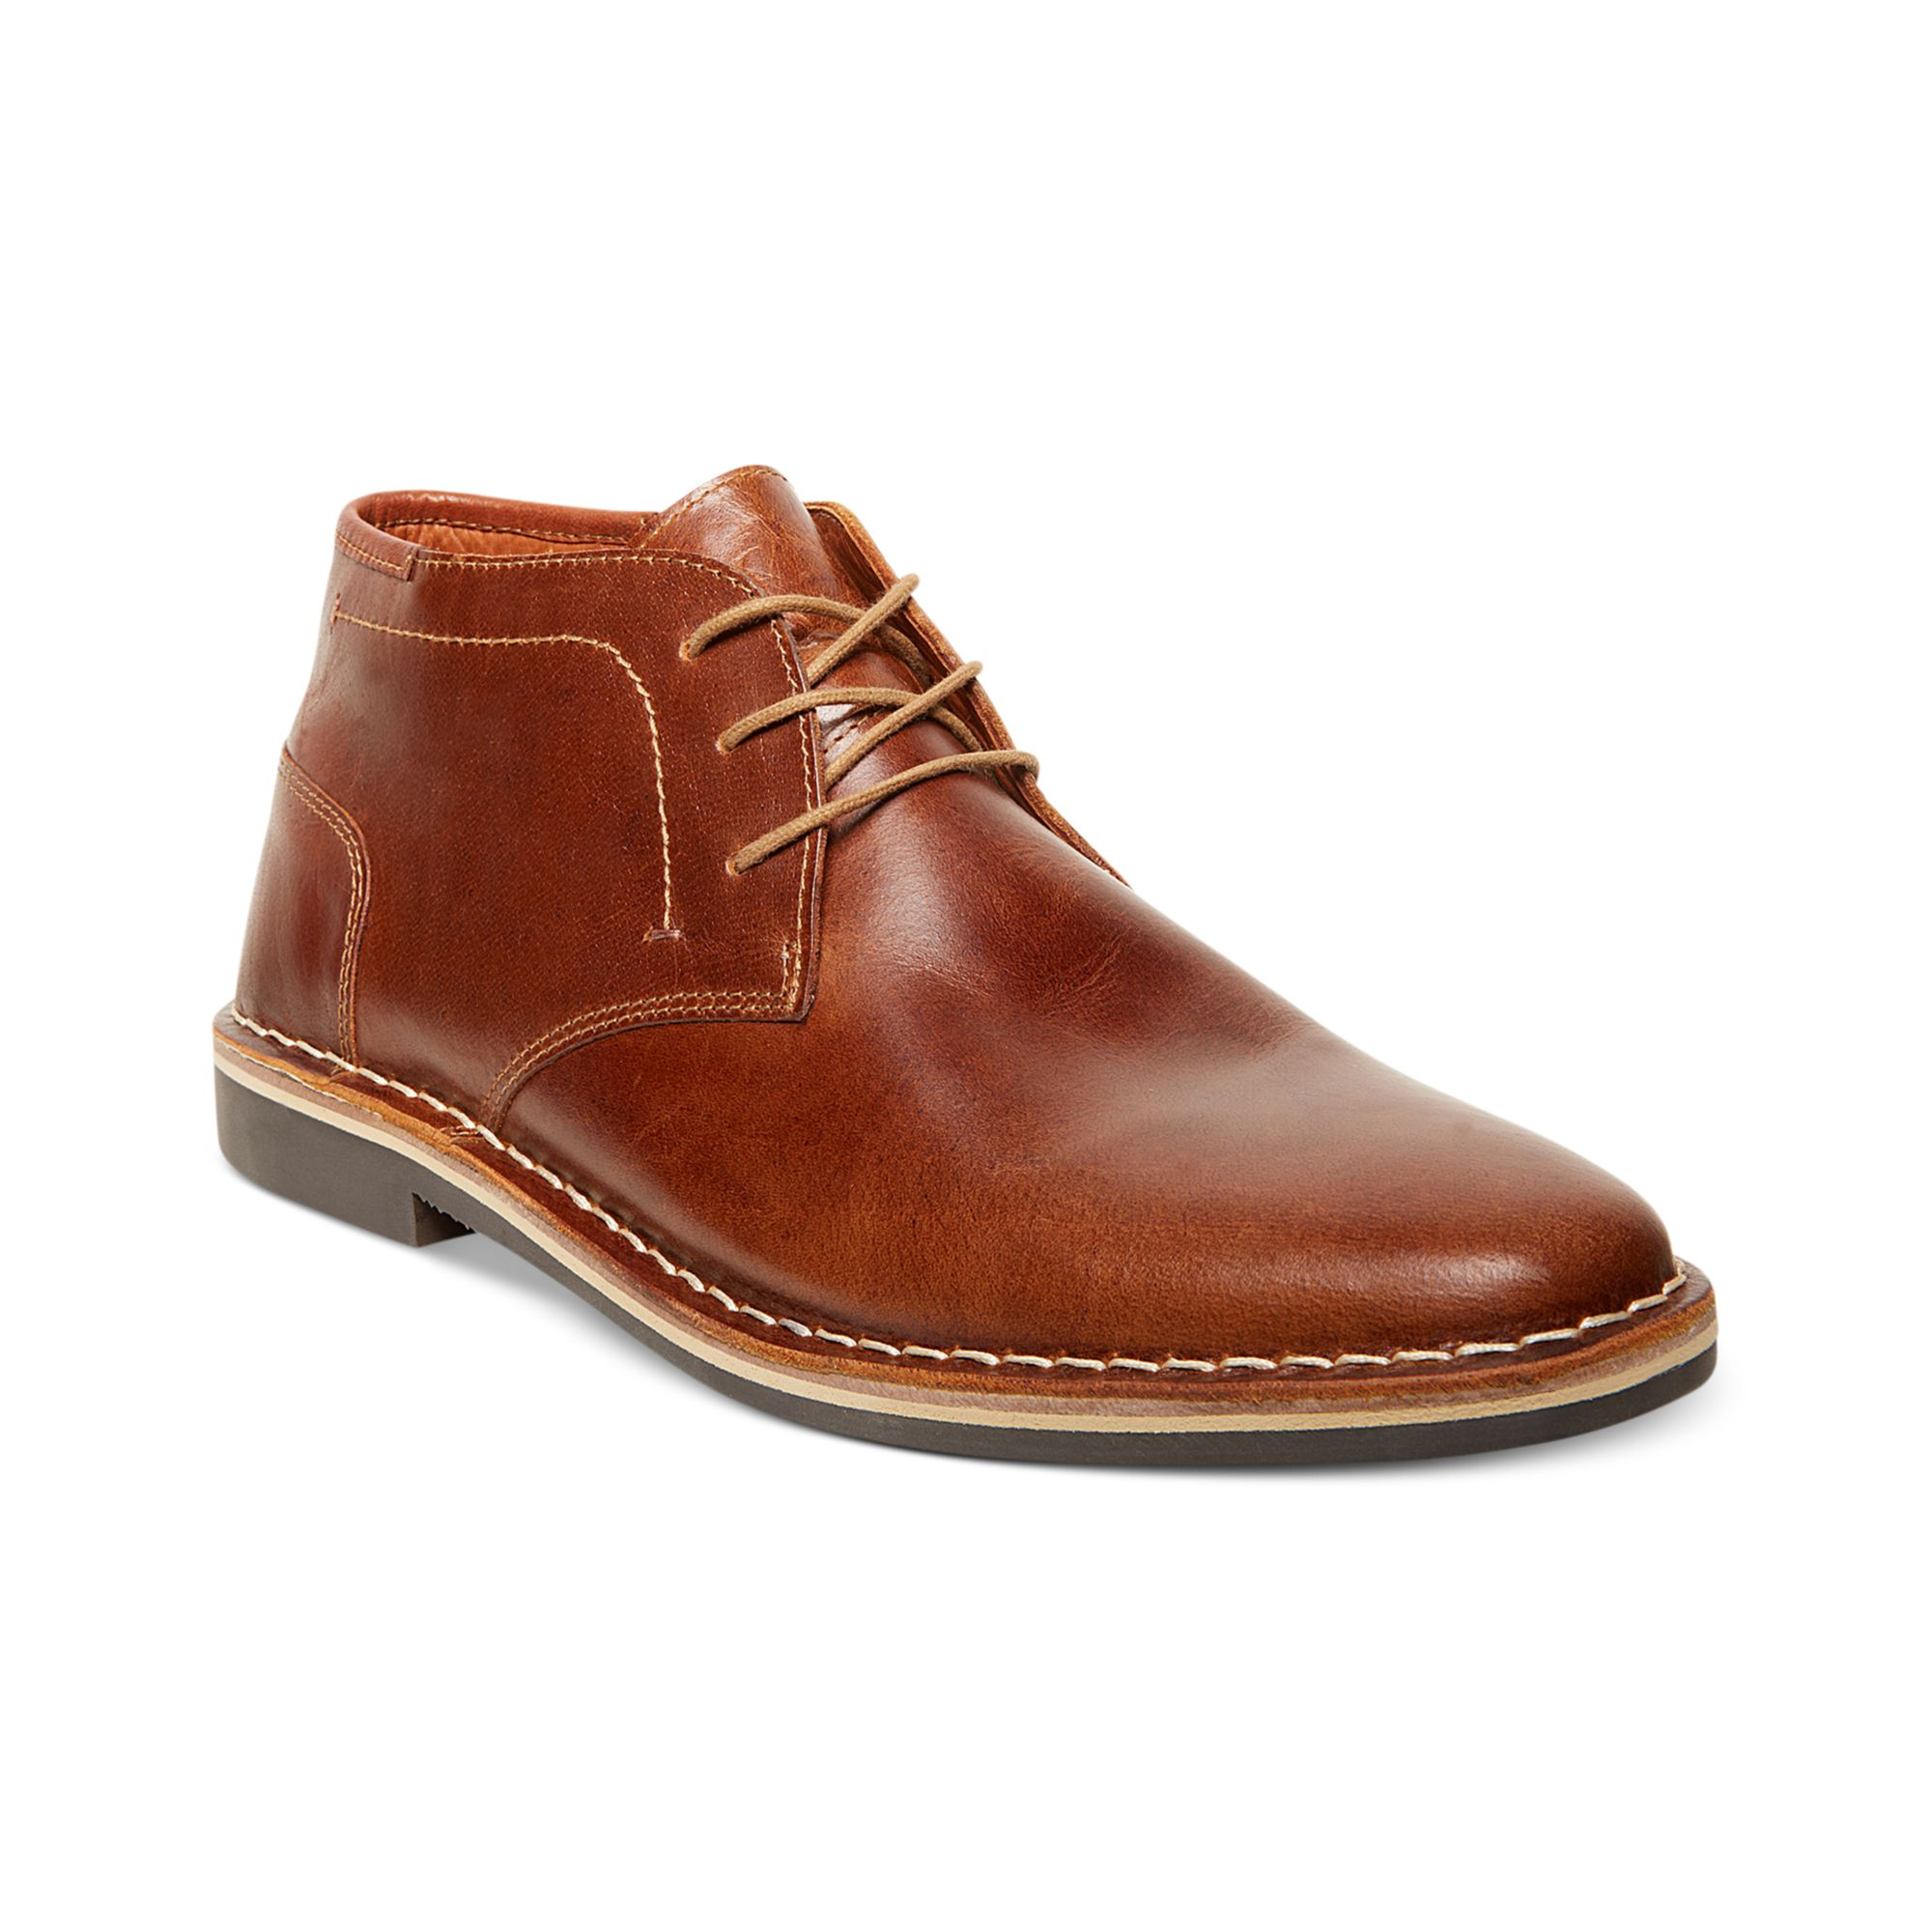 steve madden harken chukka boots in brown for cognac